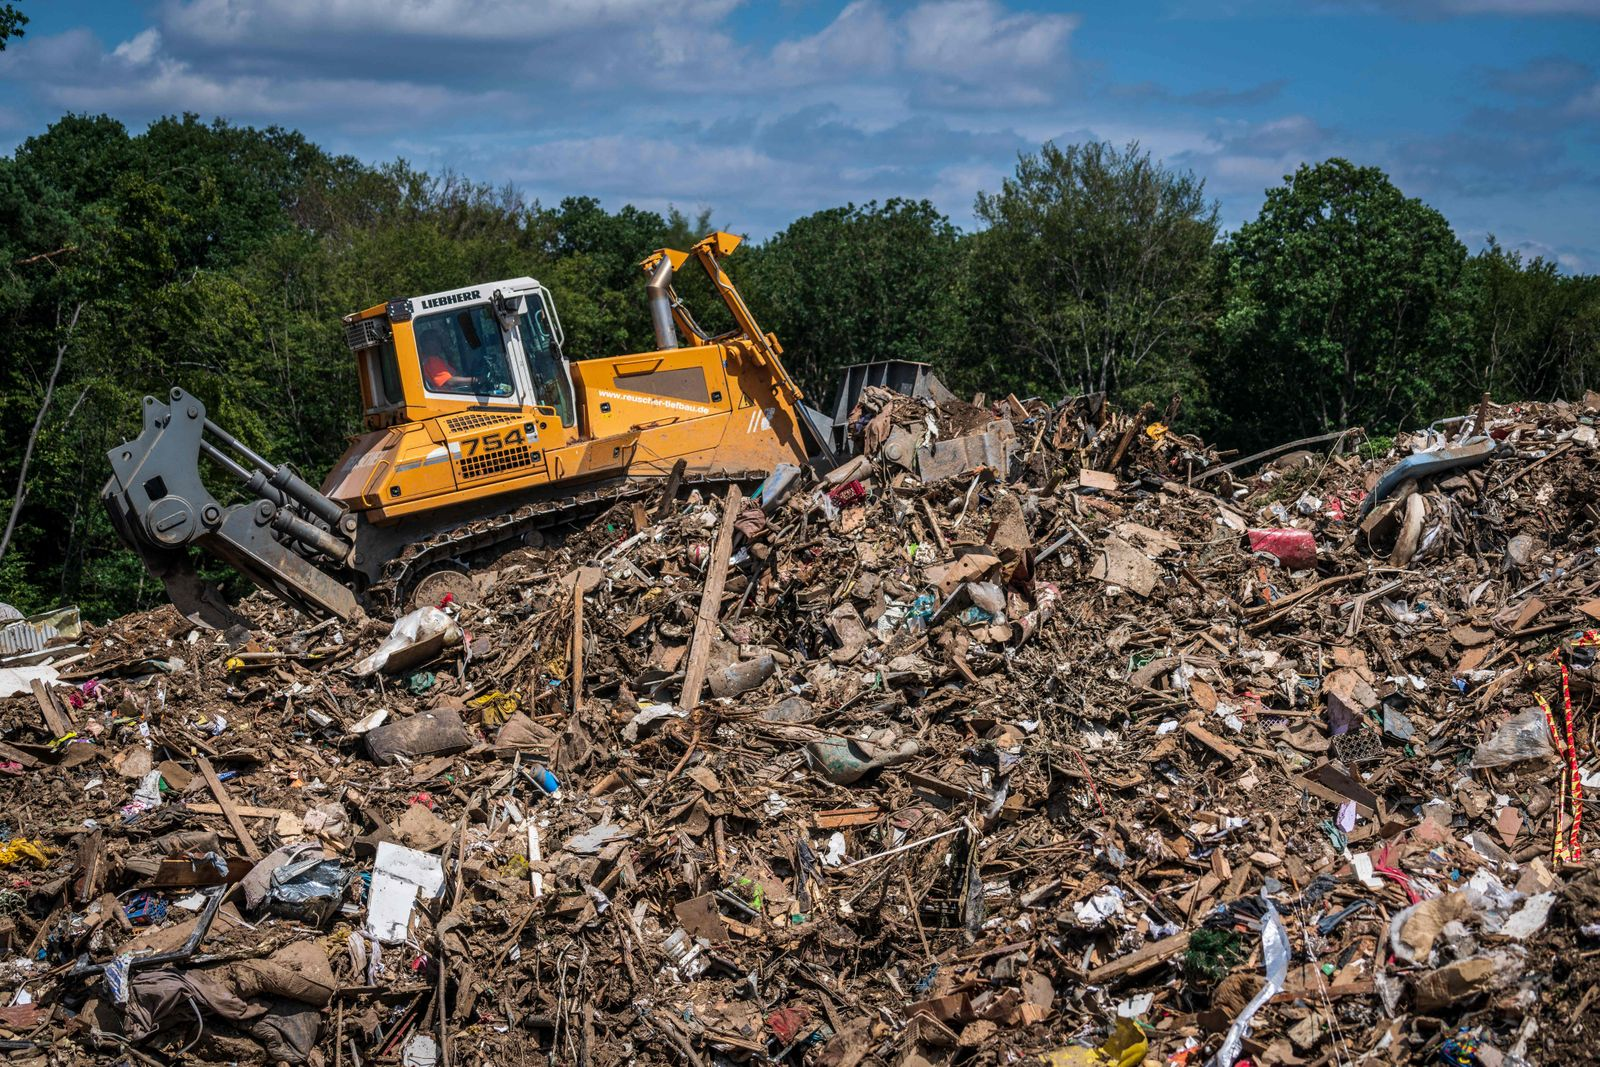 GERMANY-EUROPE-WEATHER-FLOODS-ENVIRONMENT-WASTE